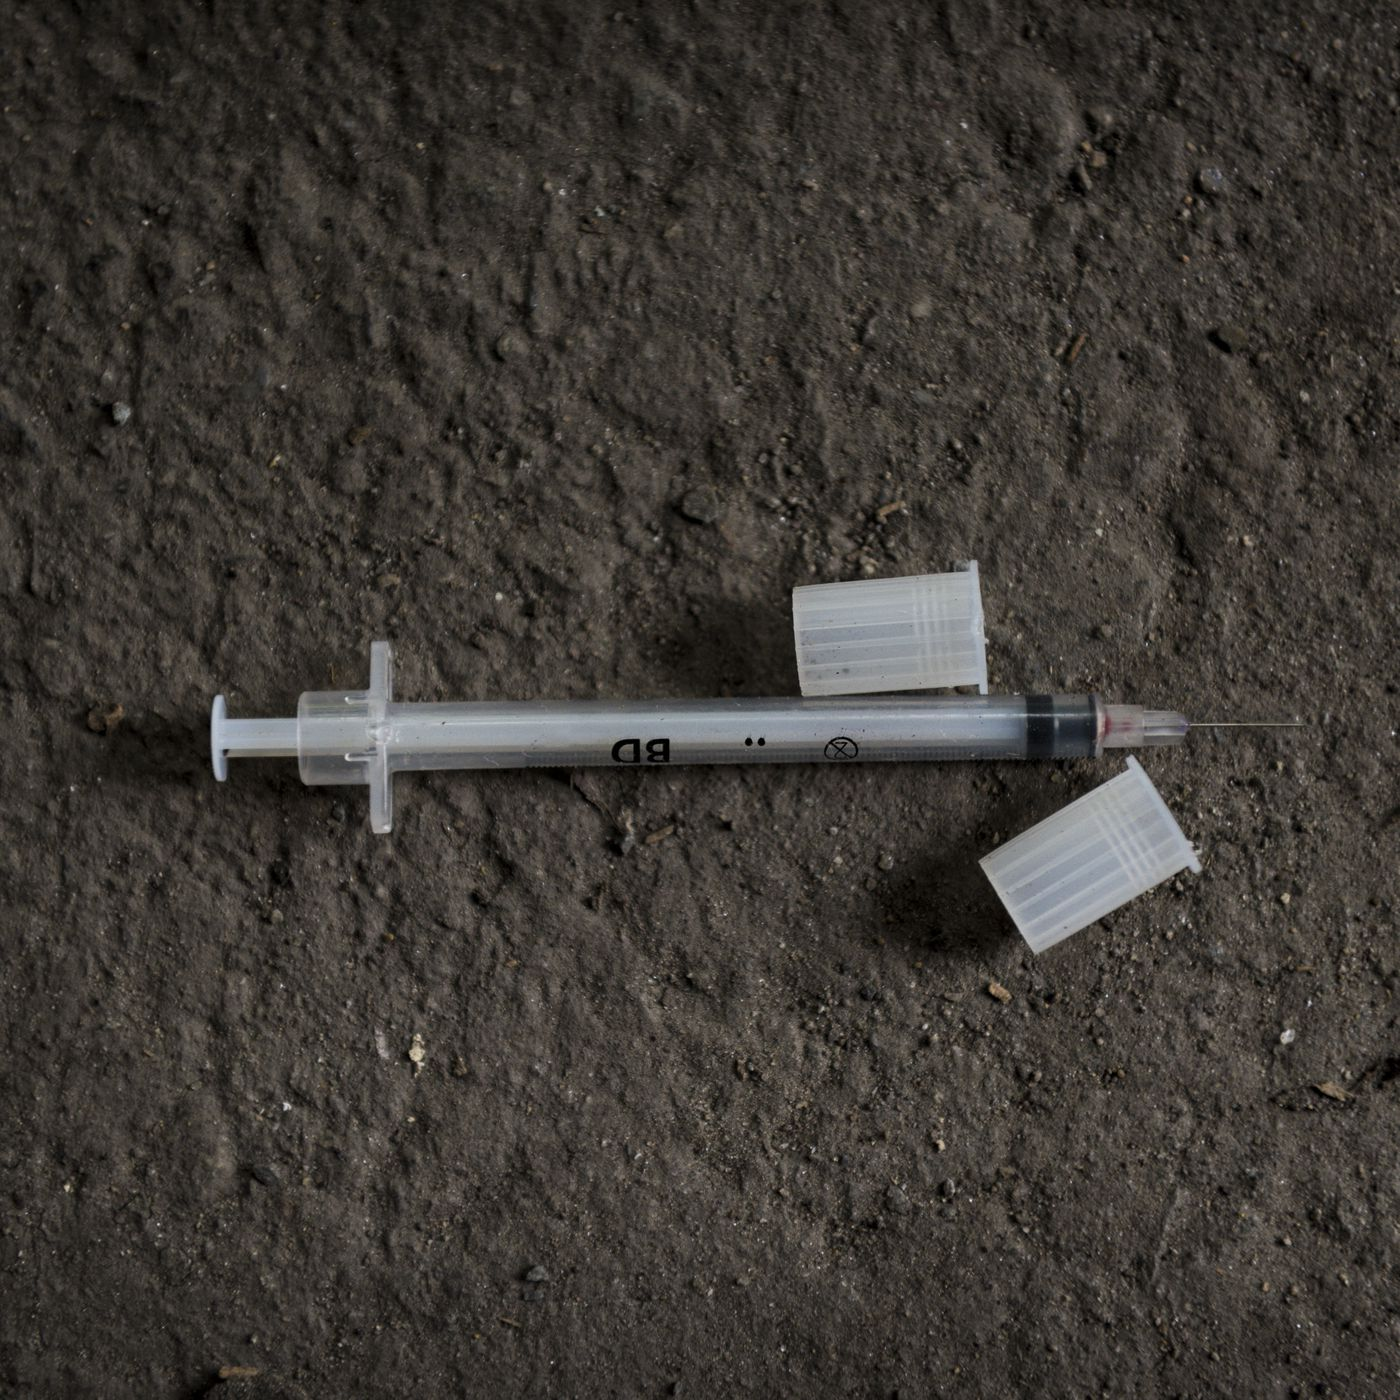 vox.com - German Lopez - Cities are considering safe injection sites. A federal judge just said they're legal.